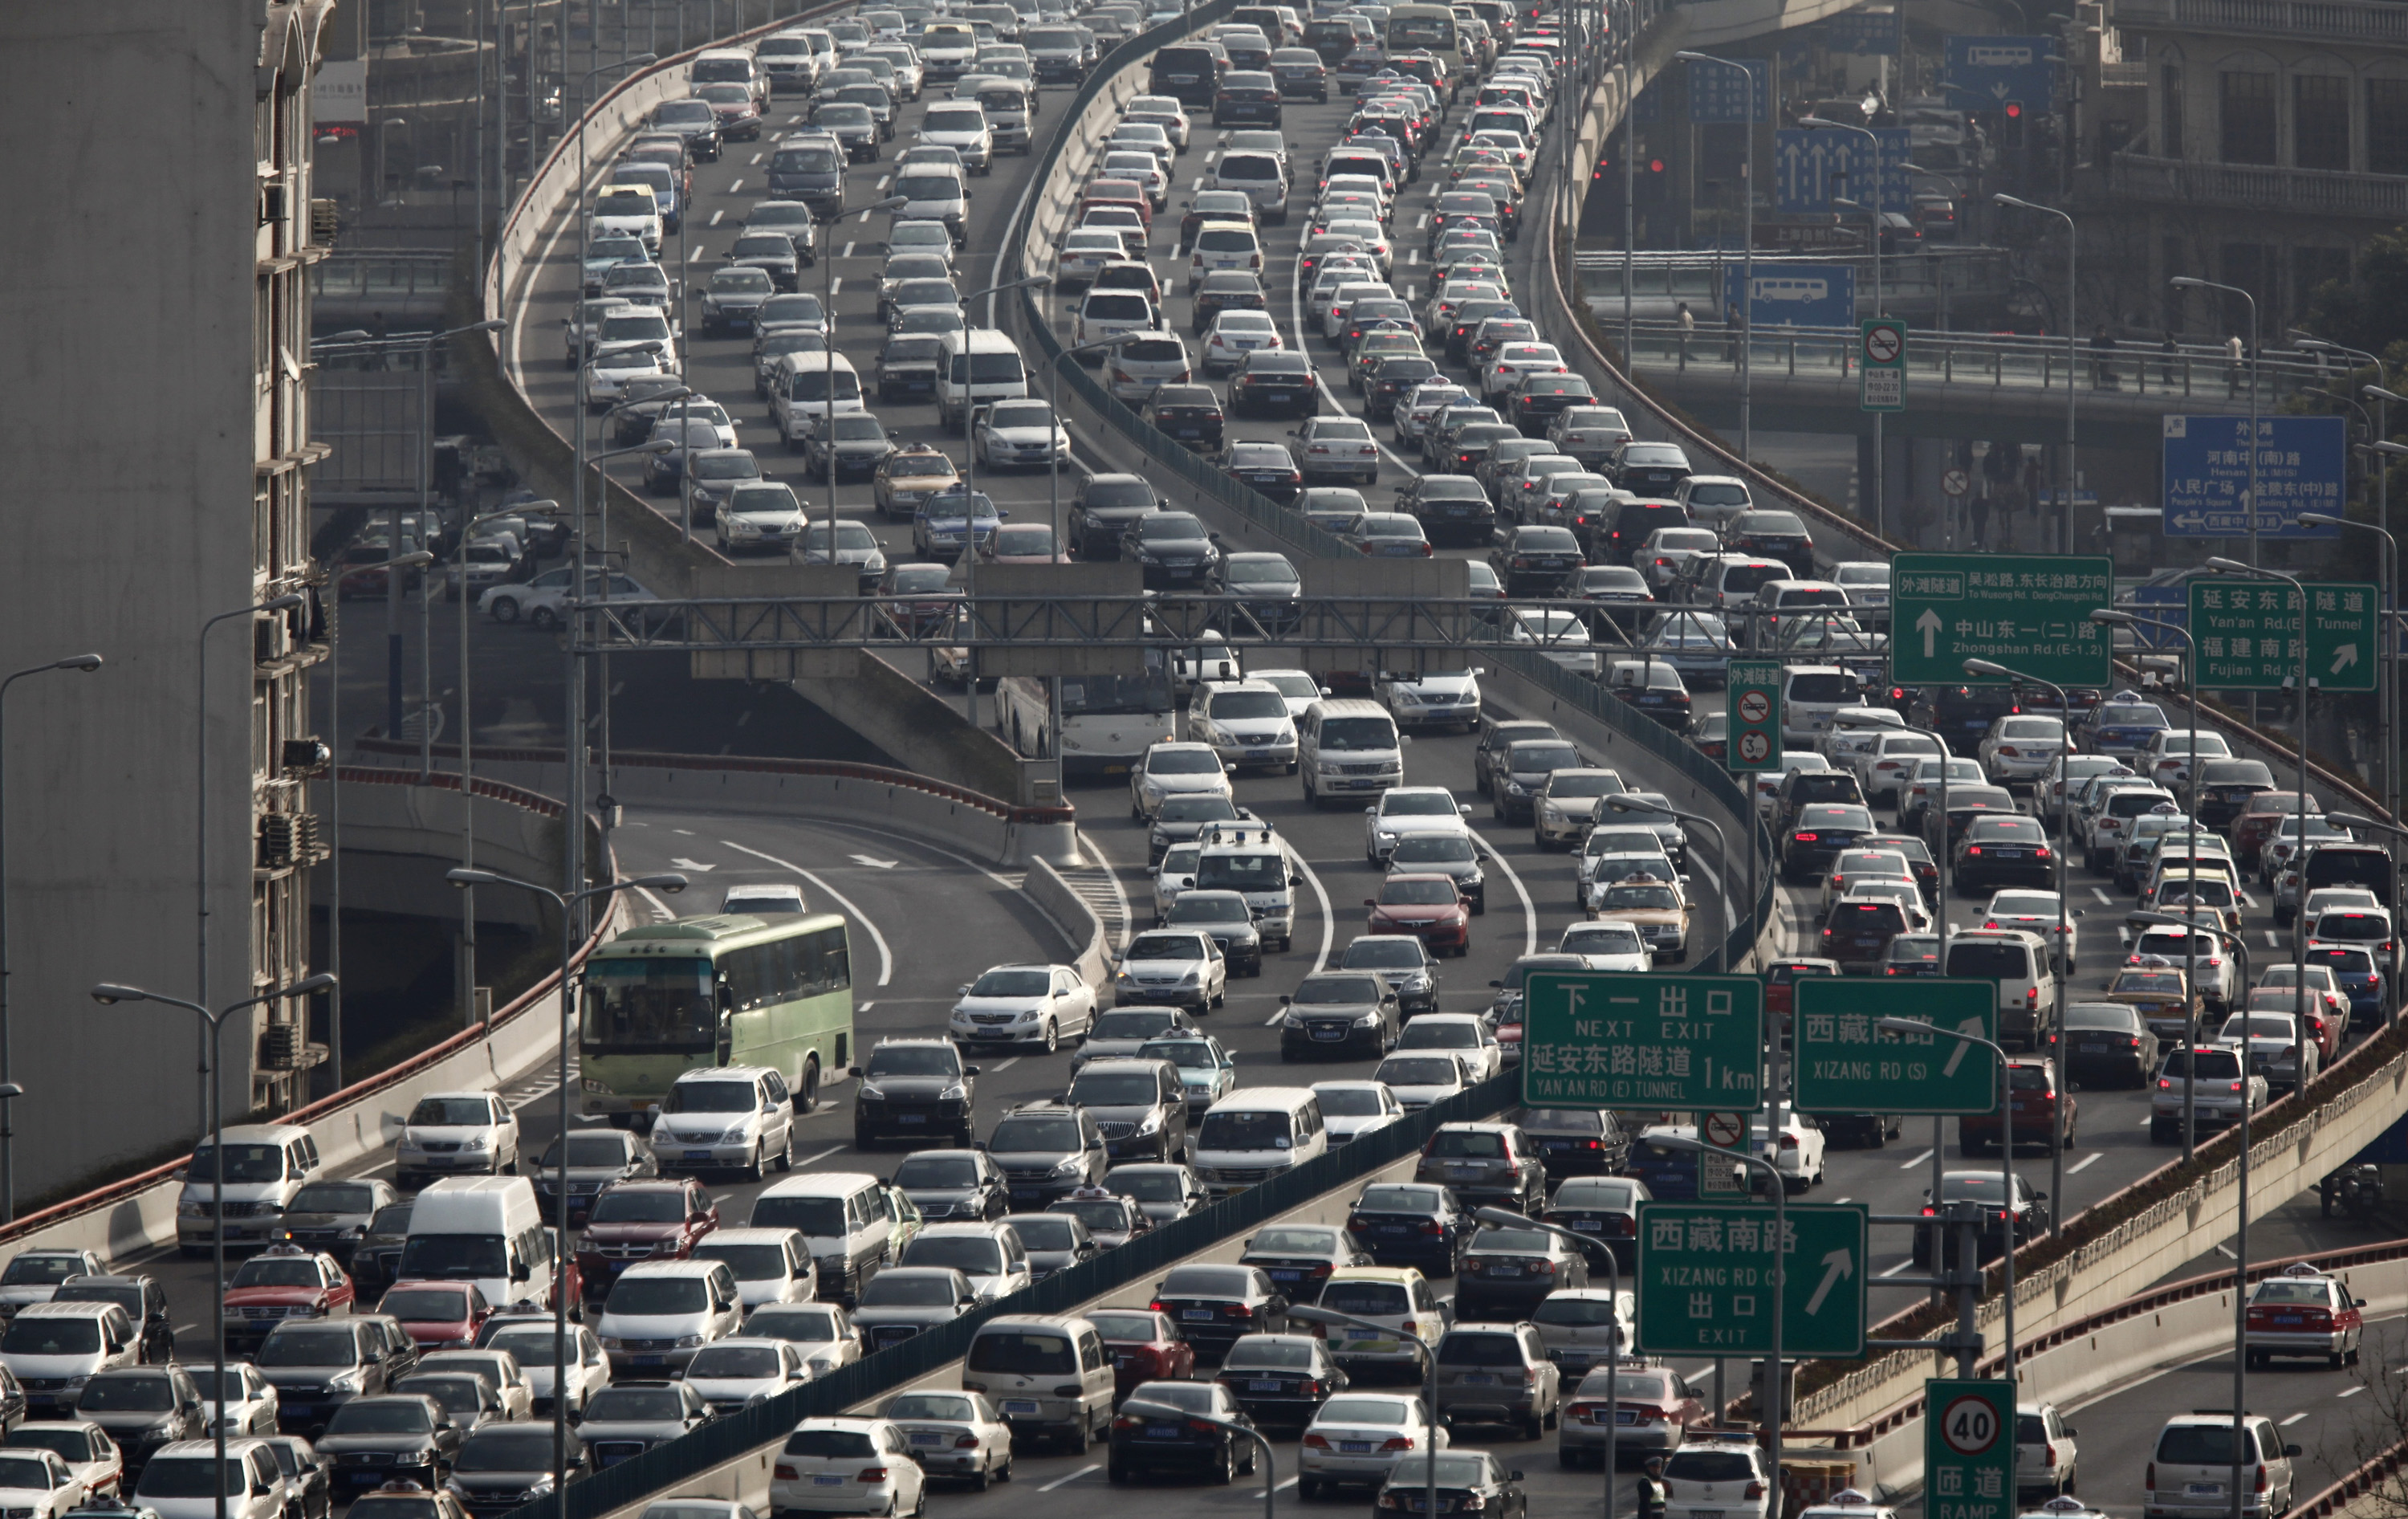 A general view of heavy traffic on a highway during the morning rush hours in Shanghai on March 26, 2012